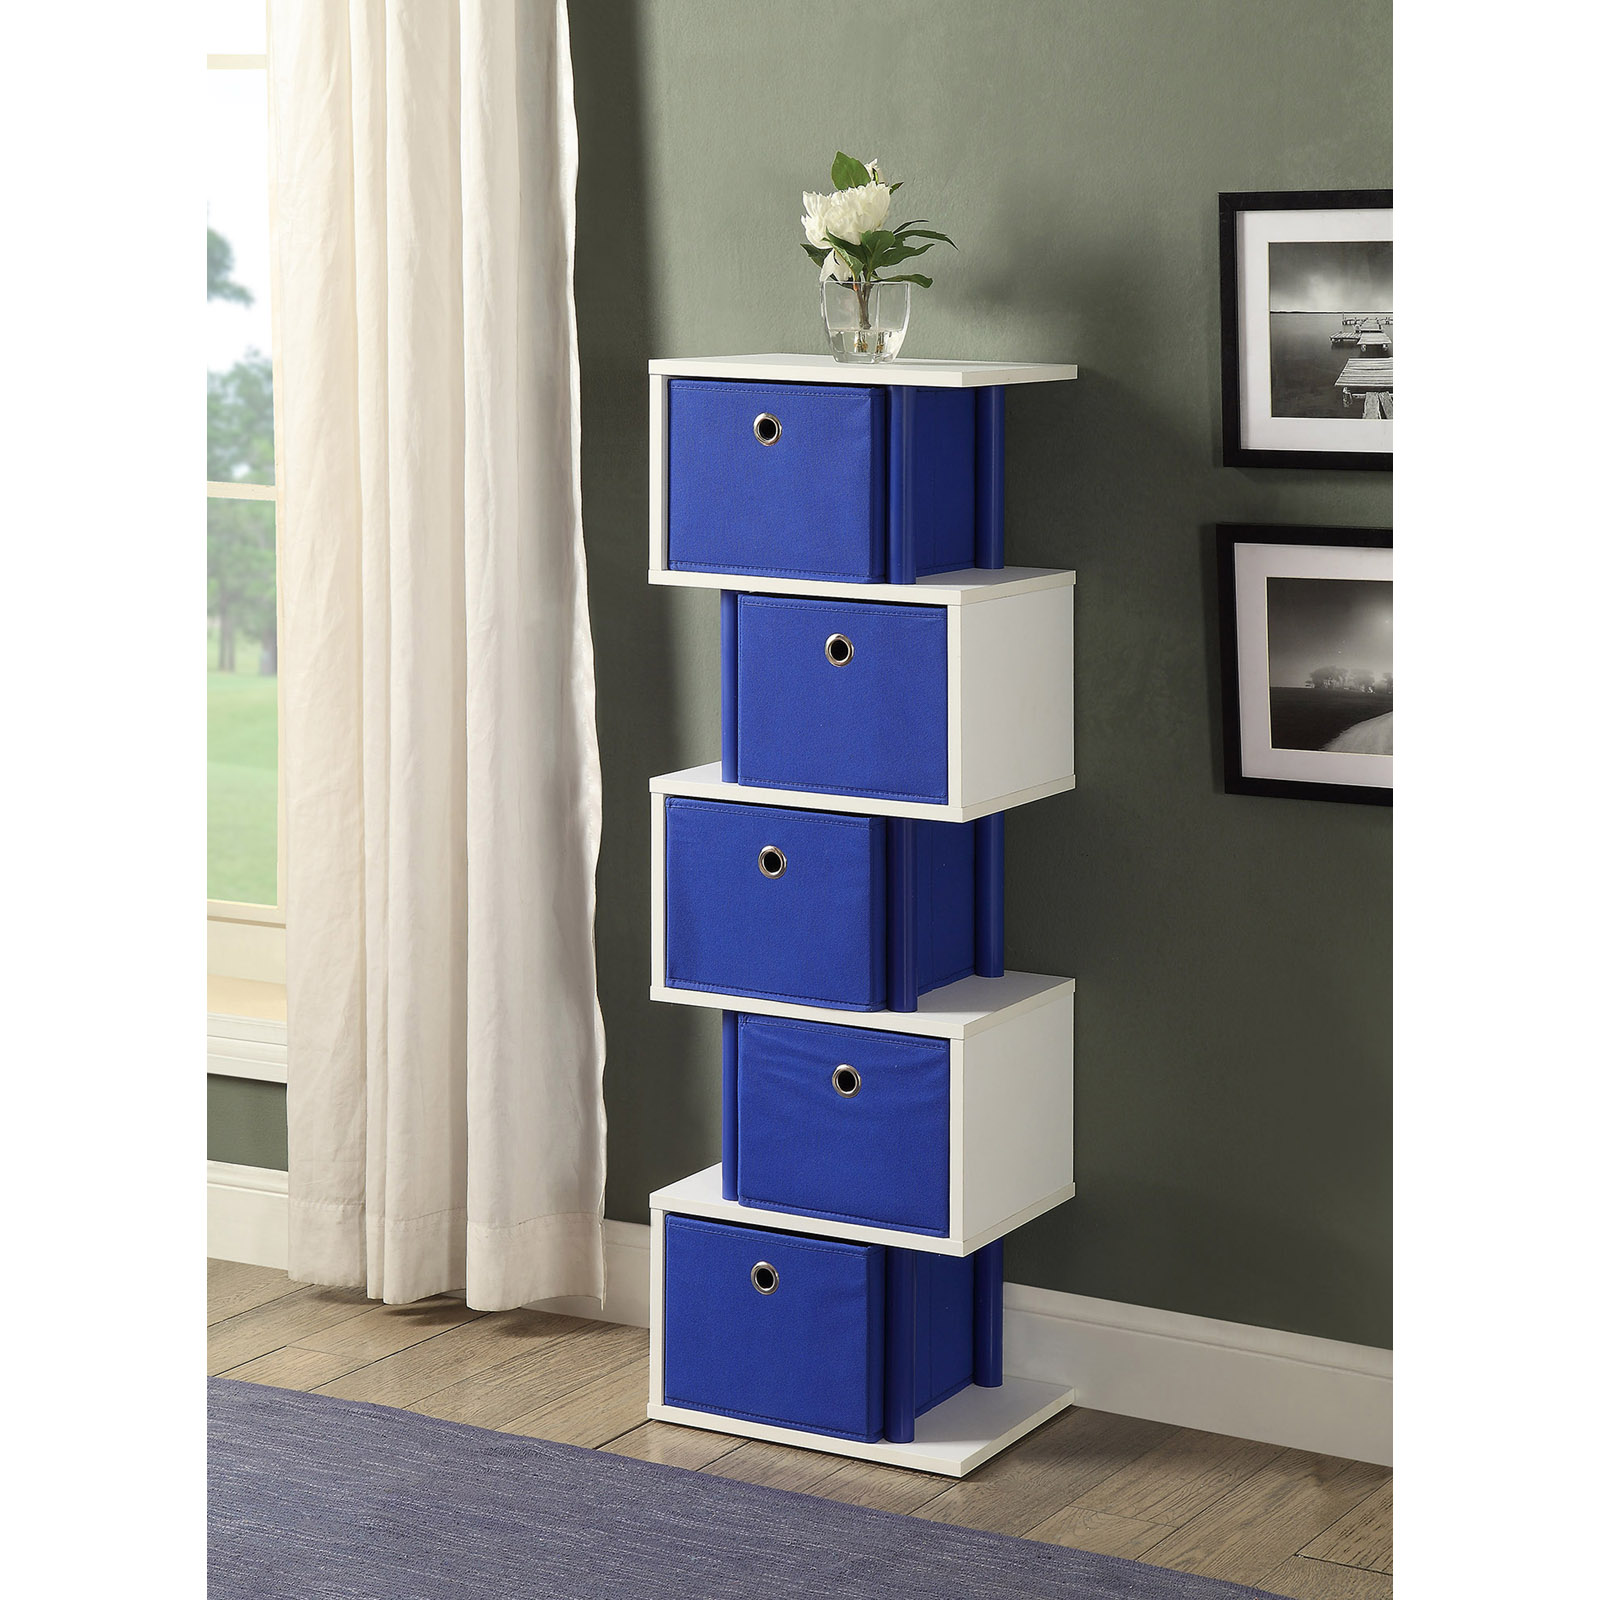 ... Picture 2 of 2  sc 1 st  eBay & 4d Concepts Zig Zag 5 Drawer Storage Tower in Ocean Blue | eBay